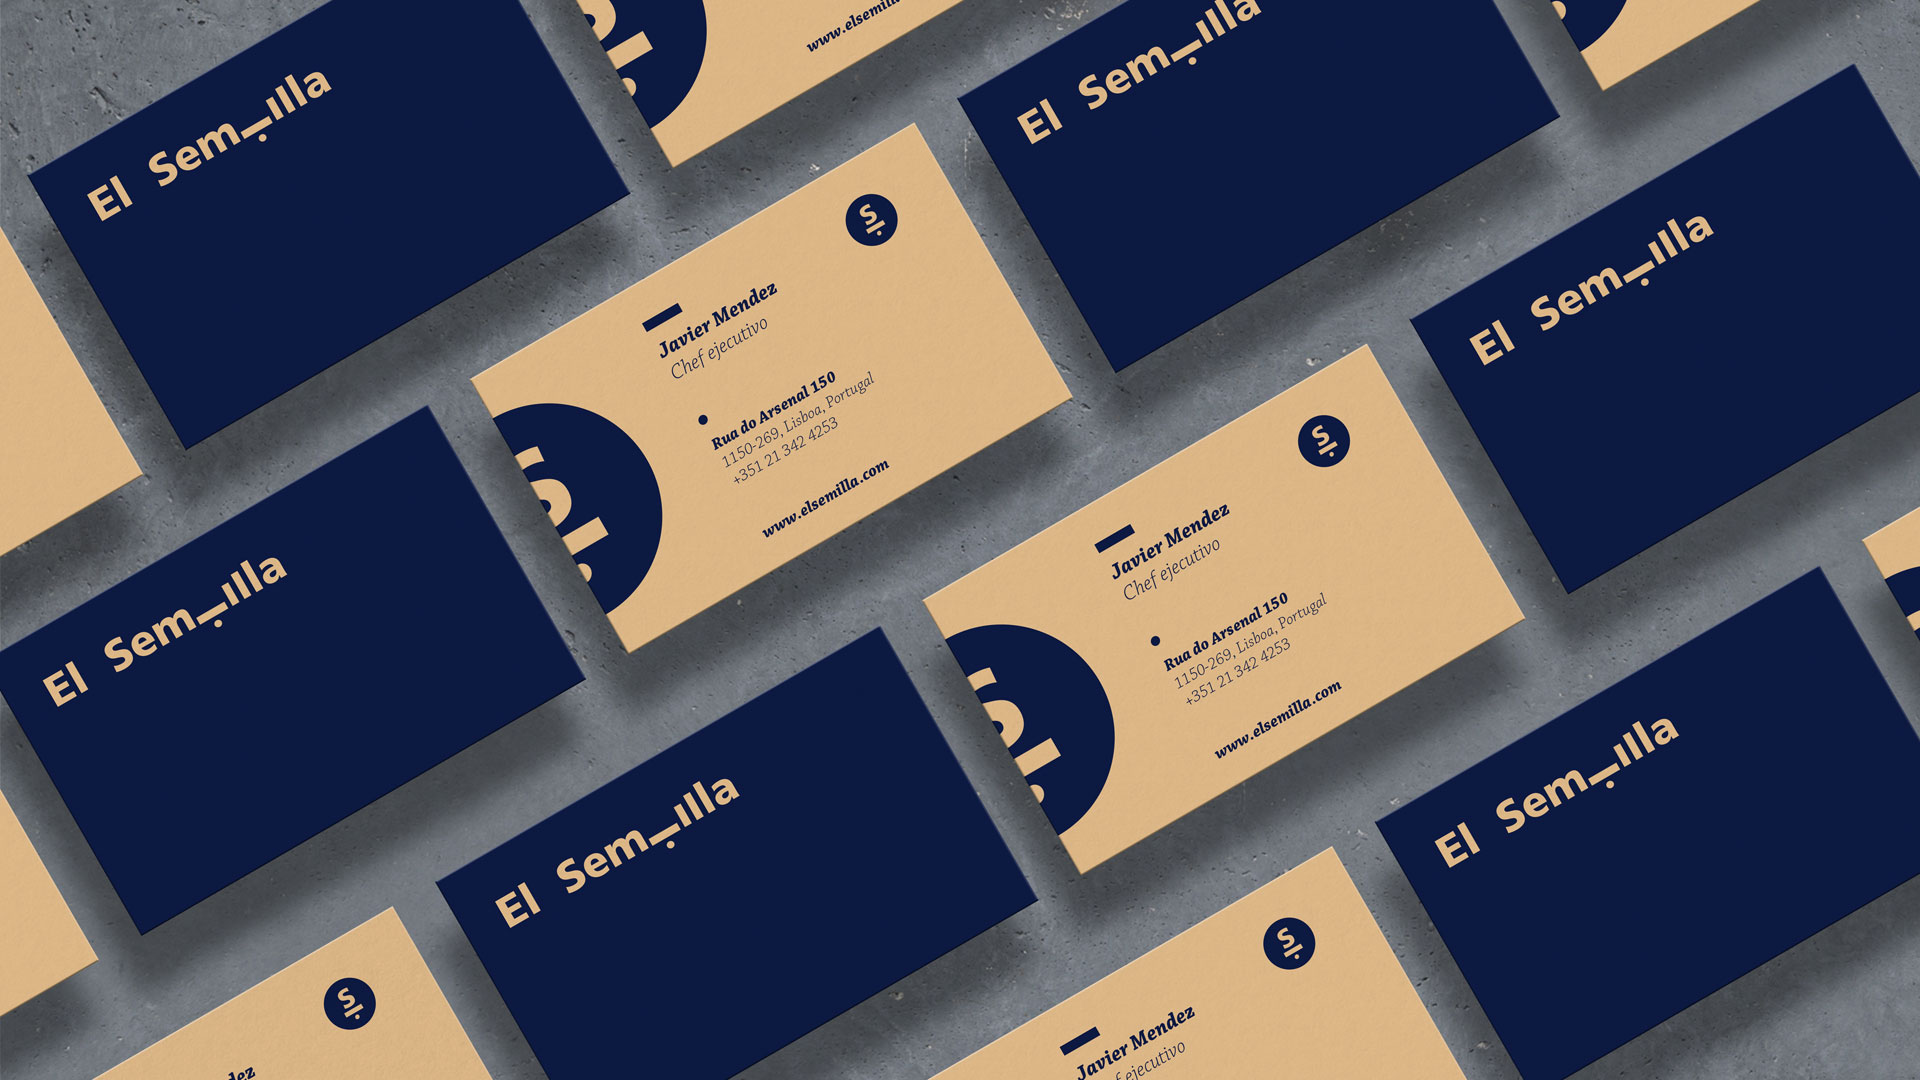 4a_stationary_branding_artdirection